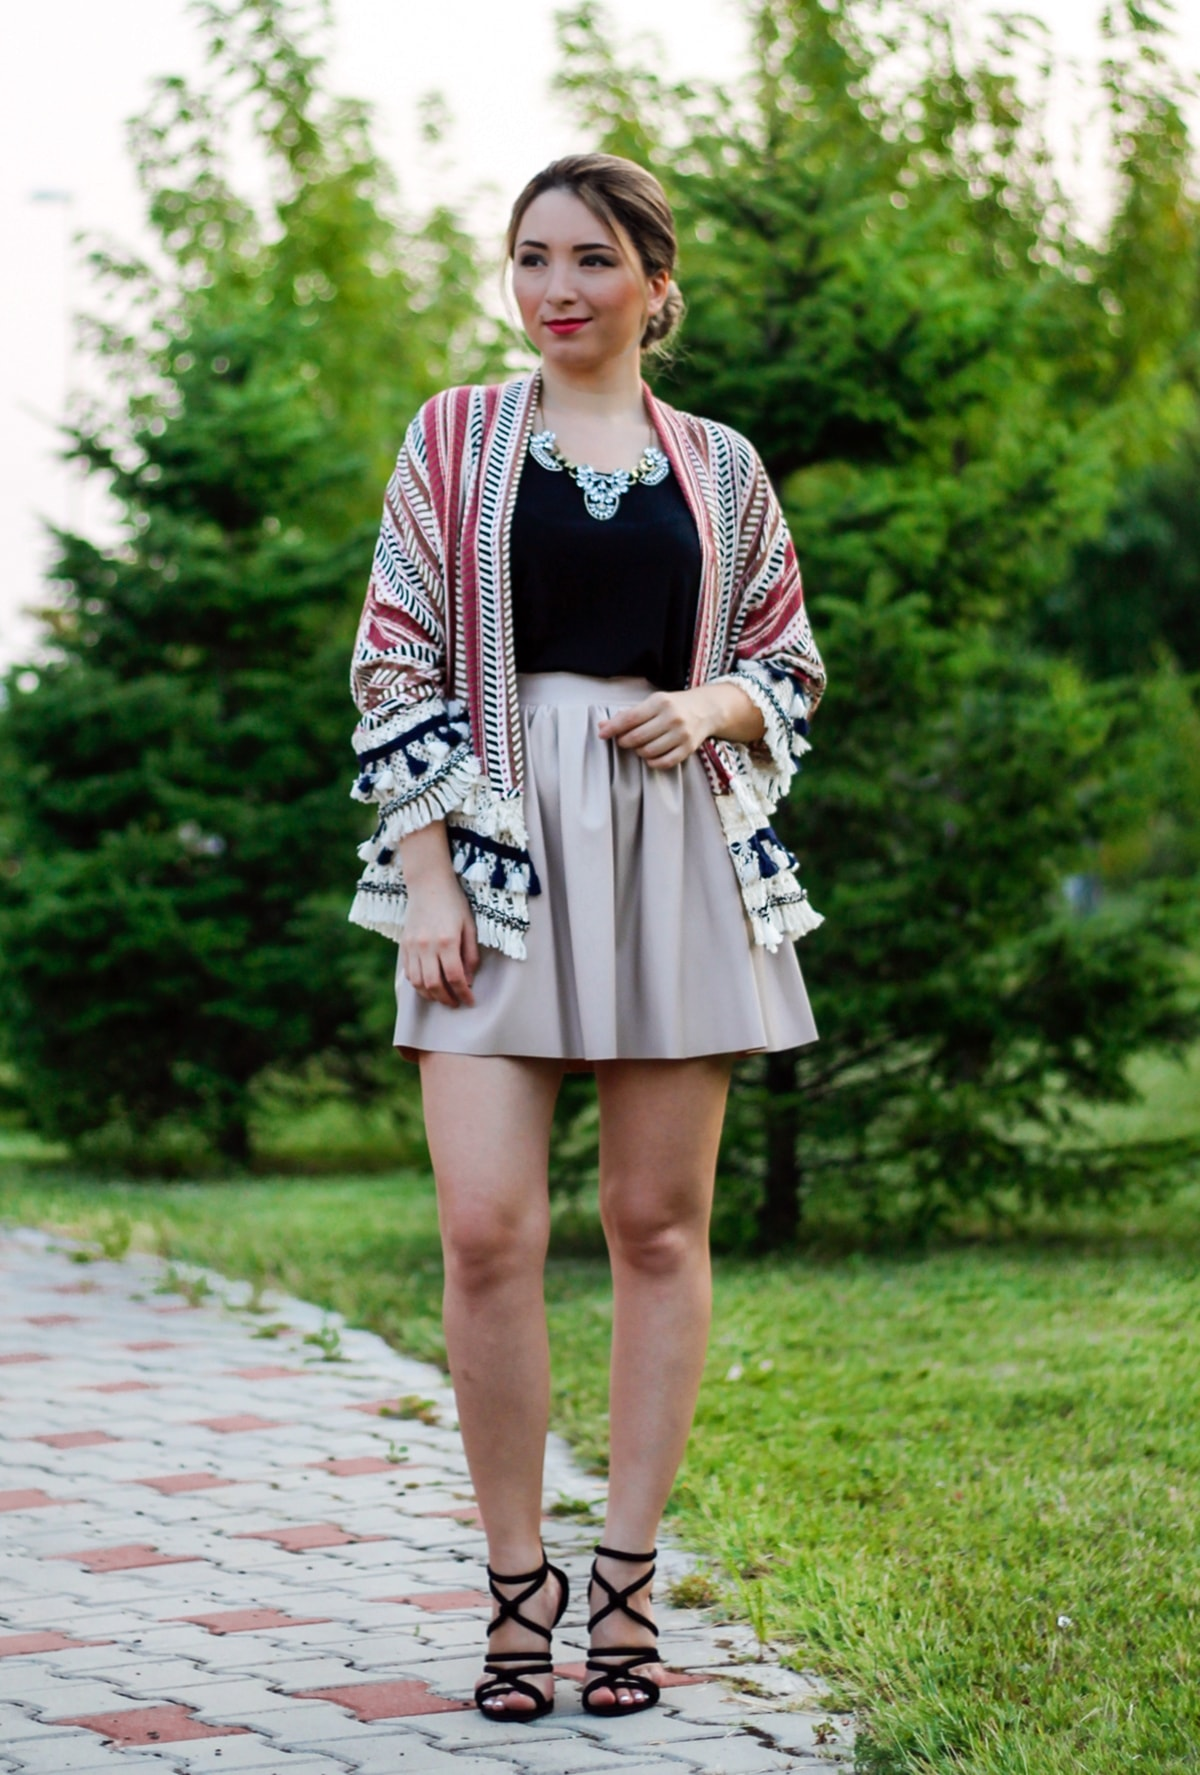 Street style: fake leather beige skirt, black top, tassels kimono, zara black sandals, romwe, andreea ristea fashion blogger, look of the day, outfit of the day